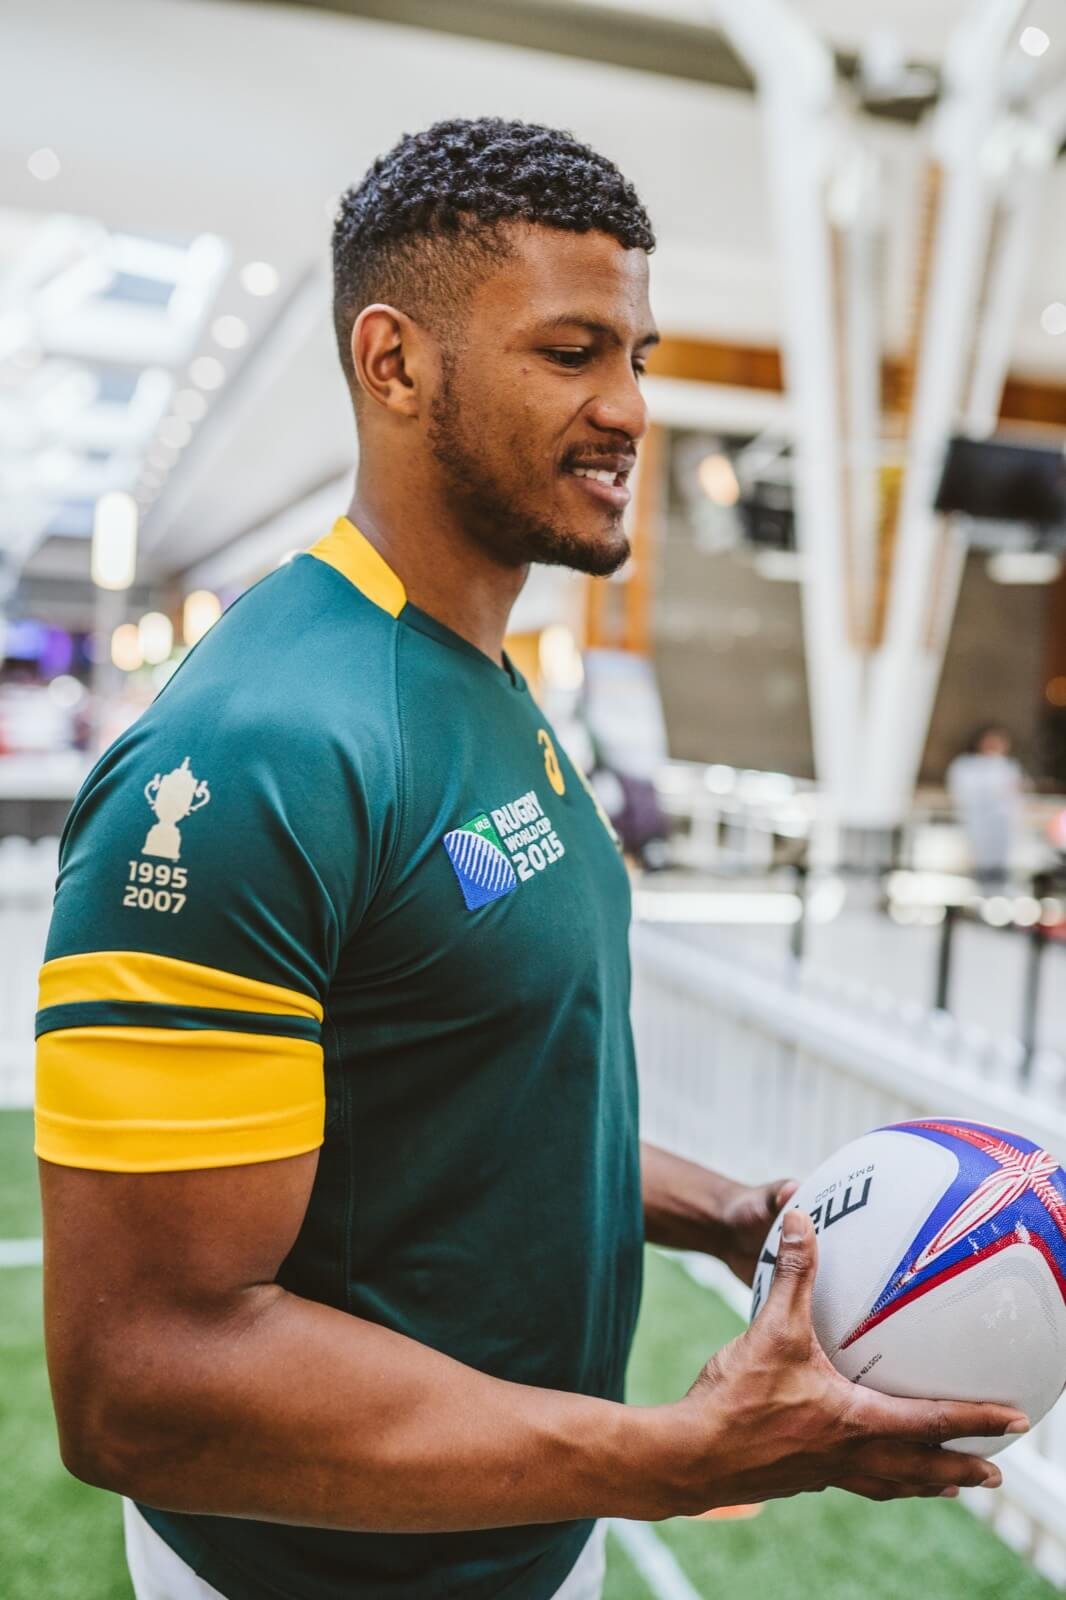 World Cup Rugby Ea547860 D629 4d25 9134 2f46cfae73c8